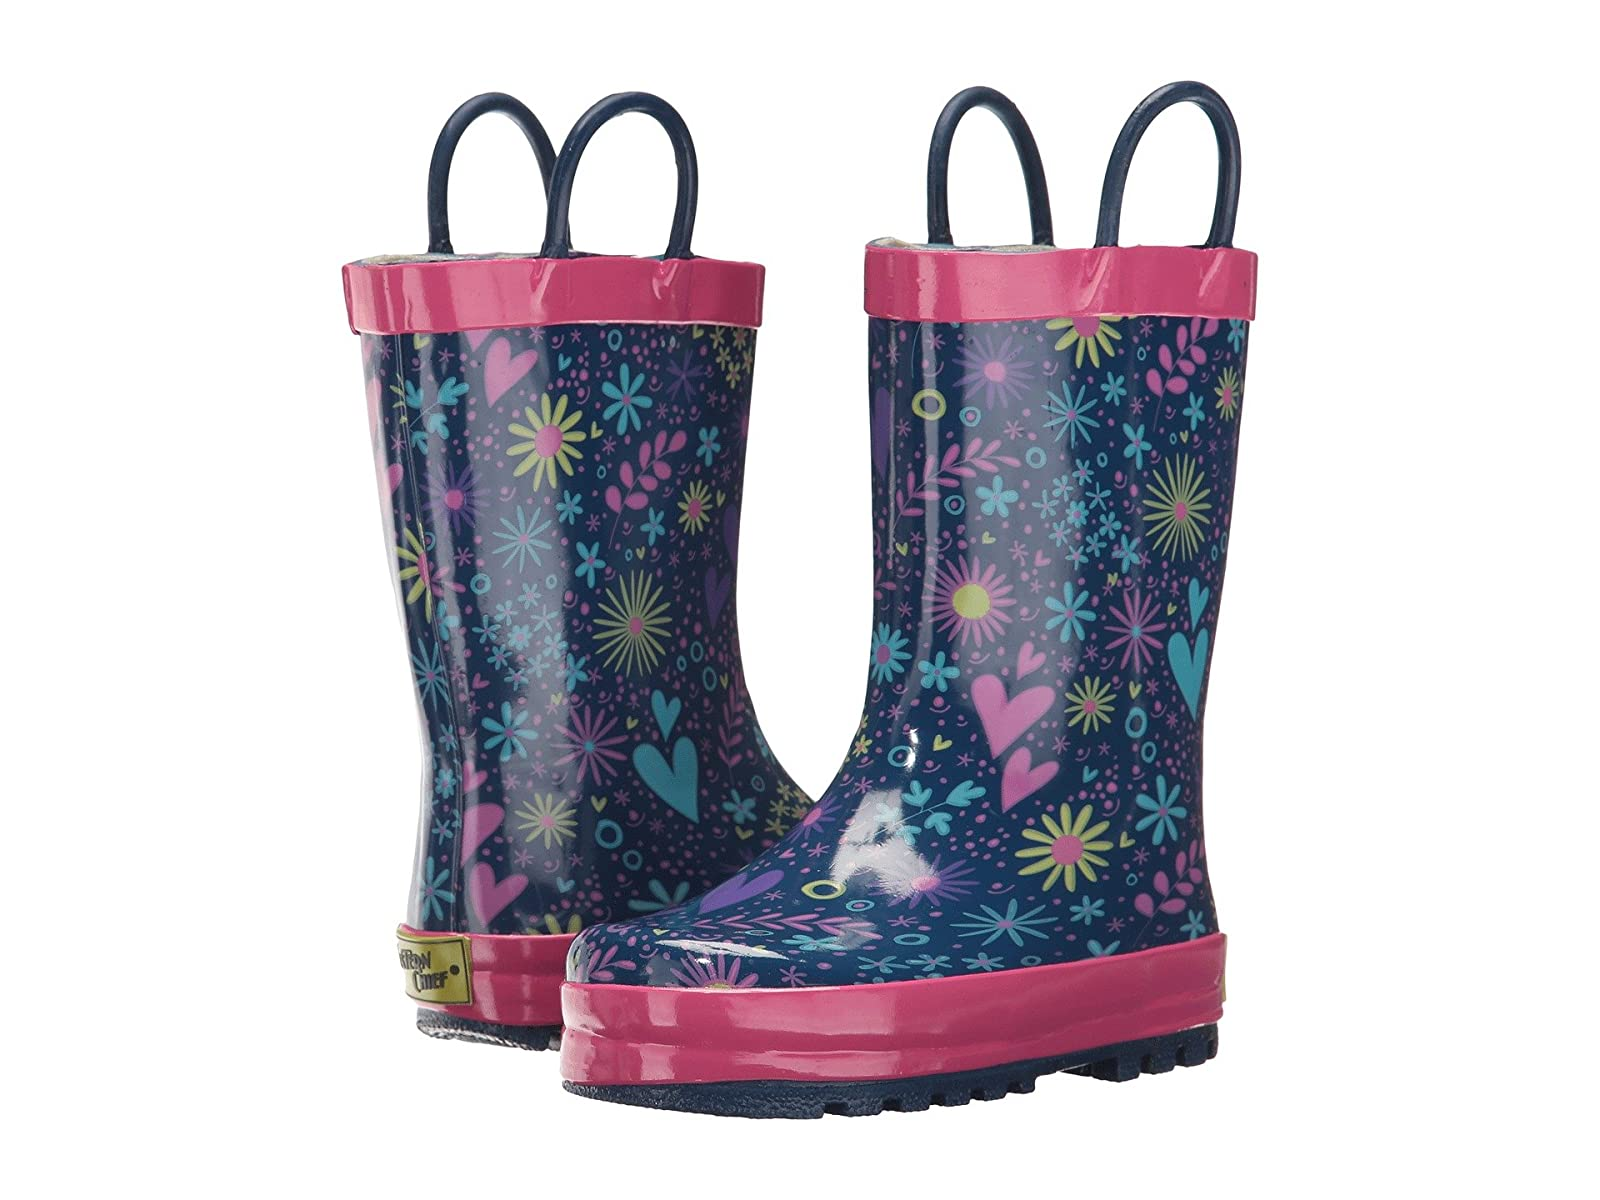 Western Chief Kids Limited Edition Printed Rain Boots (Toddler/Little Kid)Economical and quality shoes